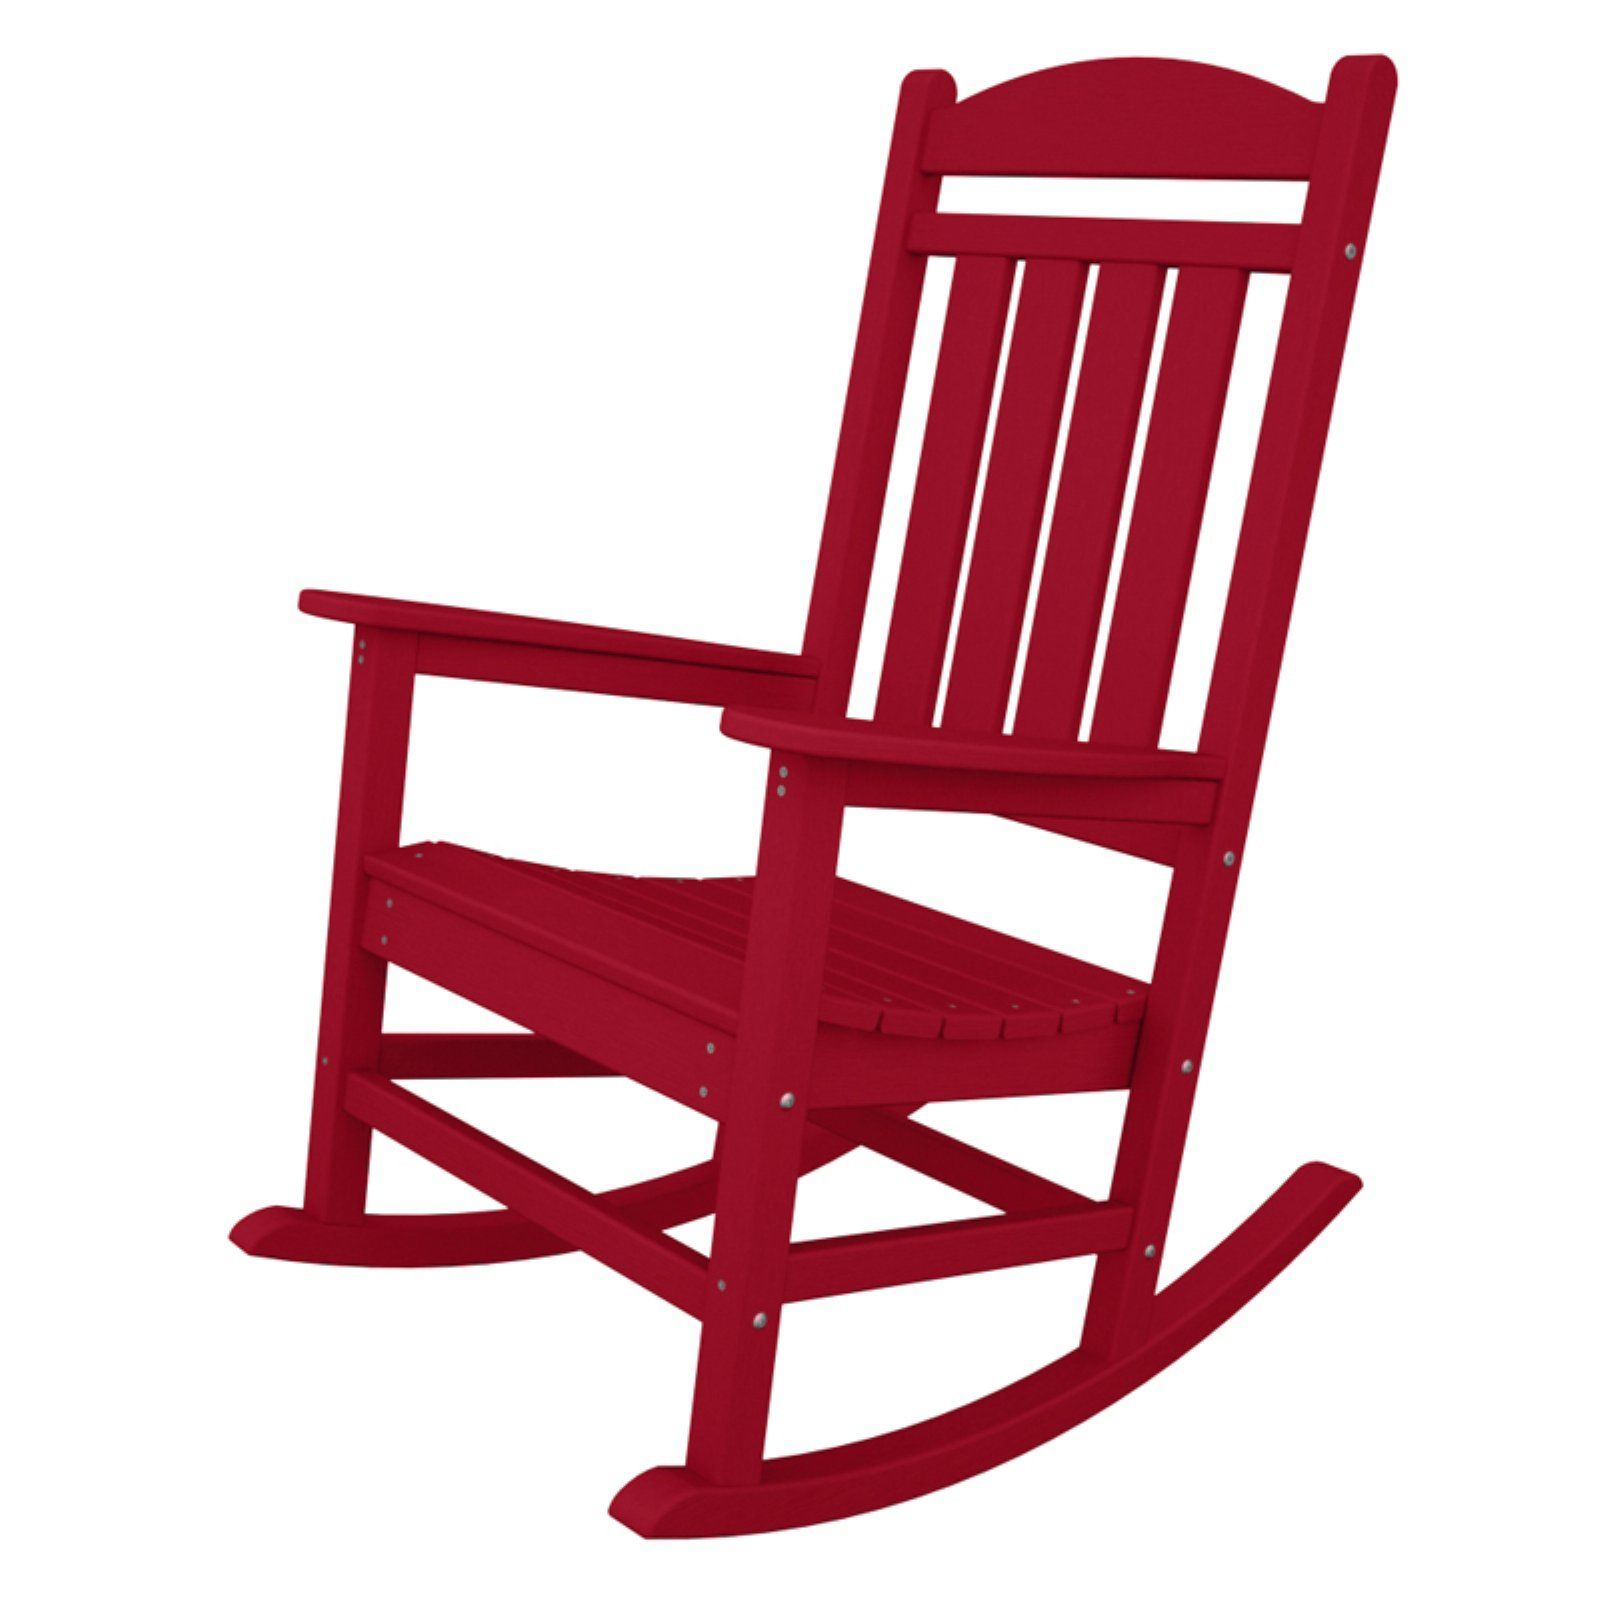 Outdoor PolywoodPresidential Recycled Plastic Rocking Chair Sunset Red